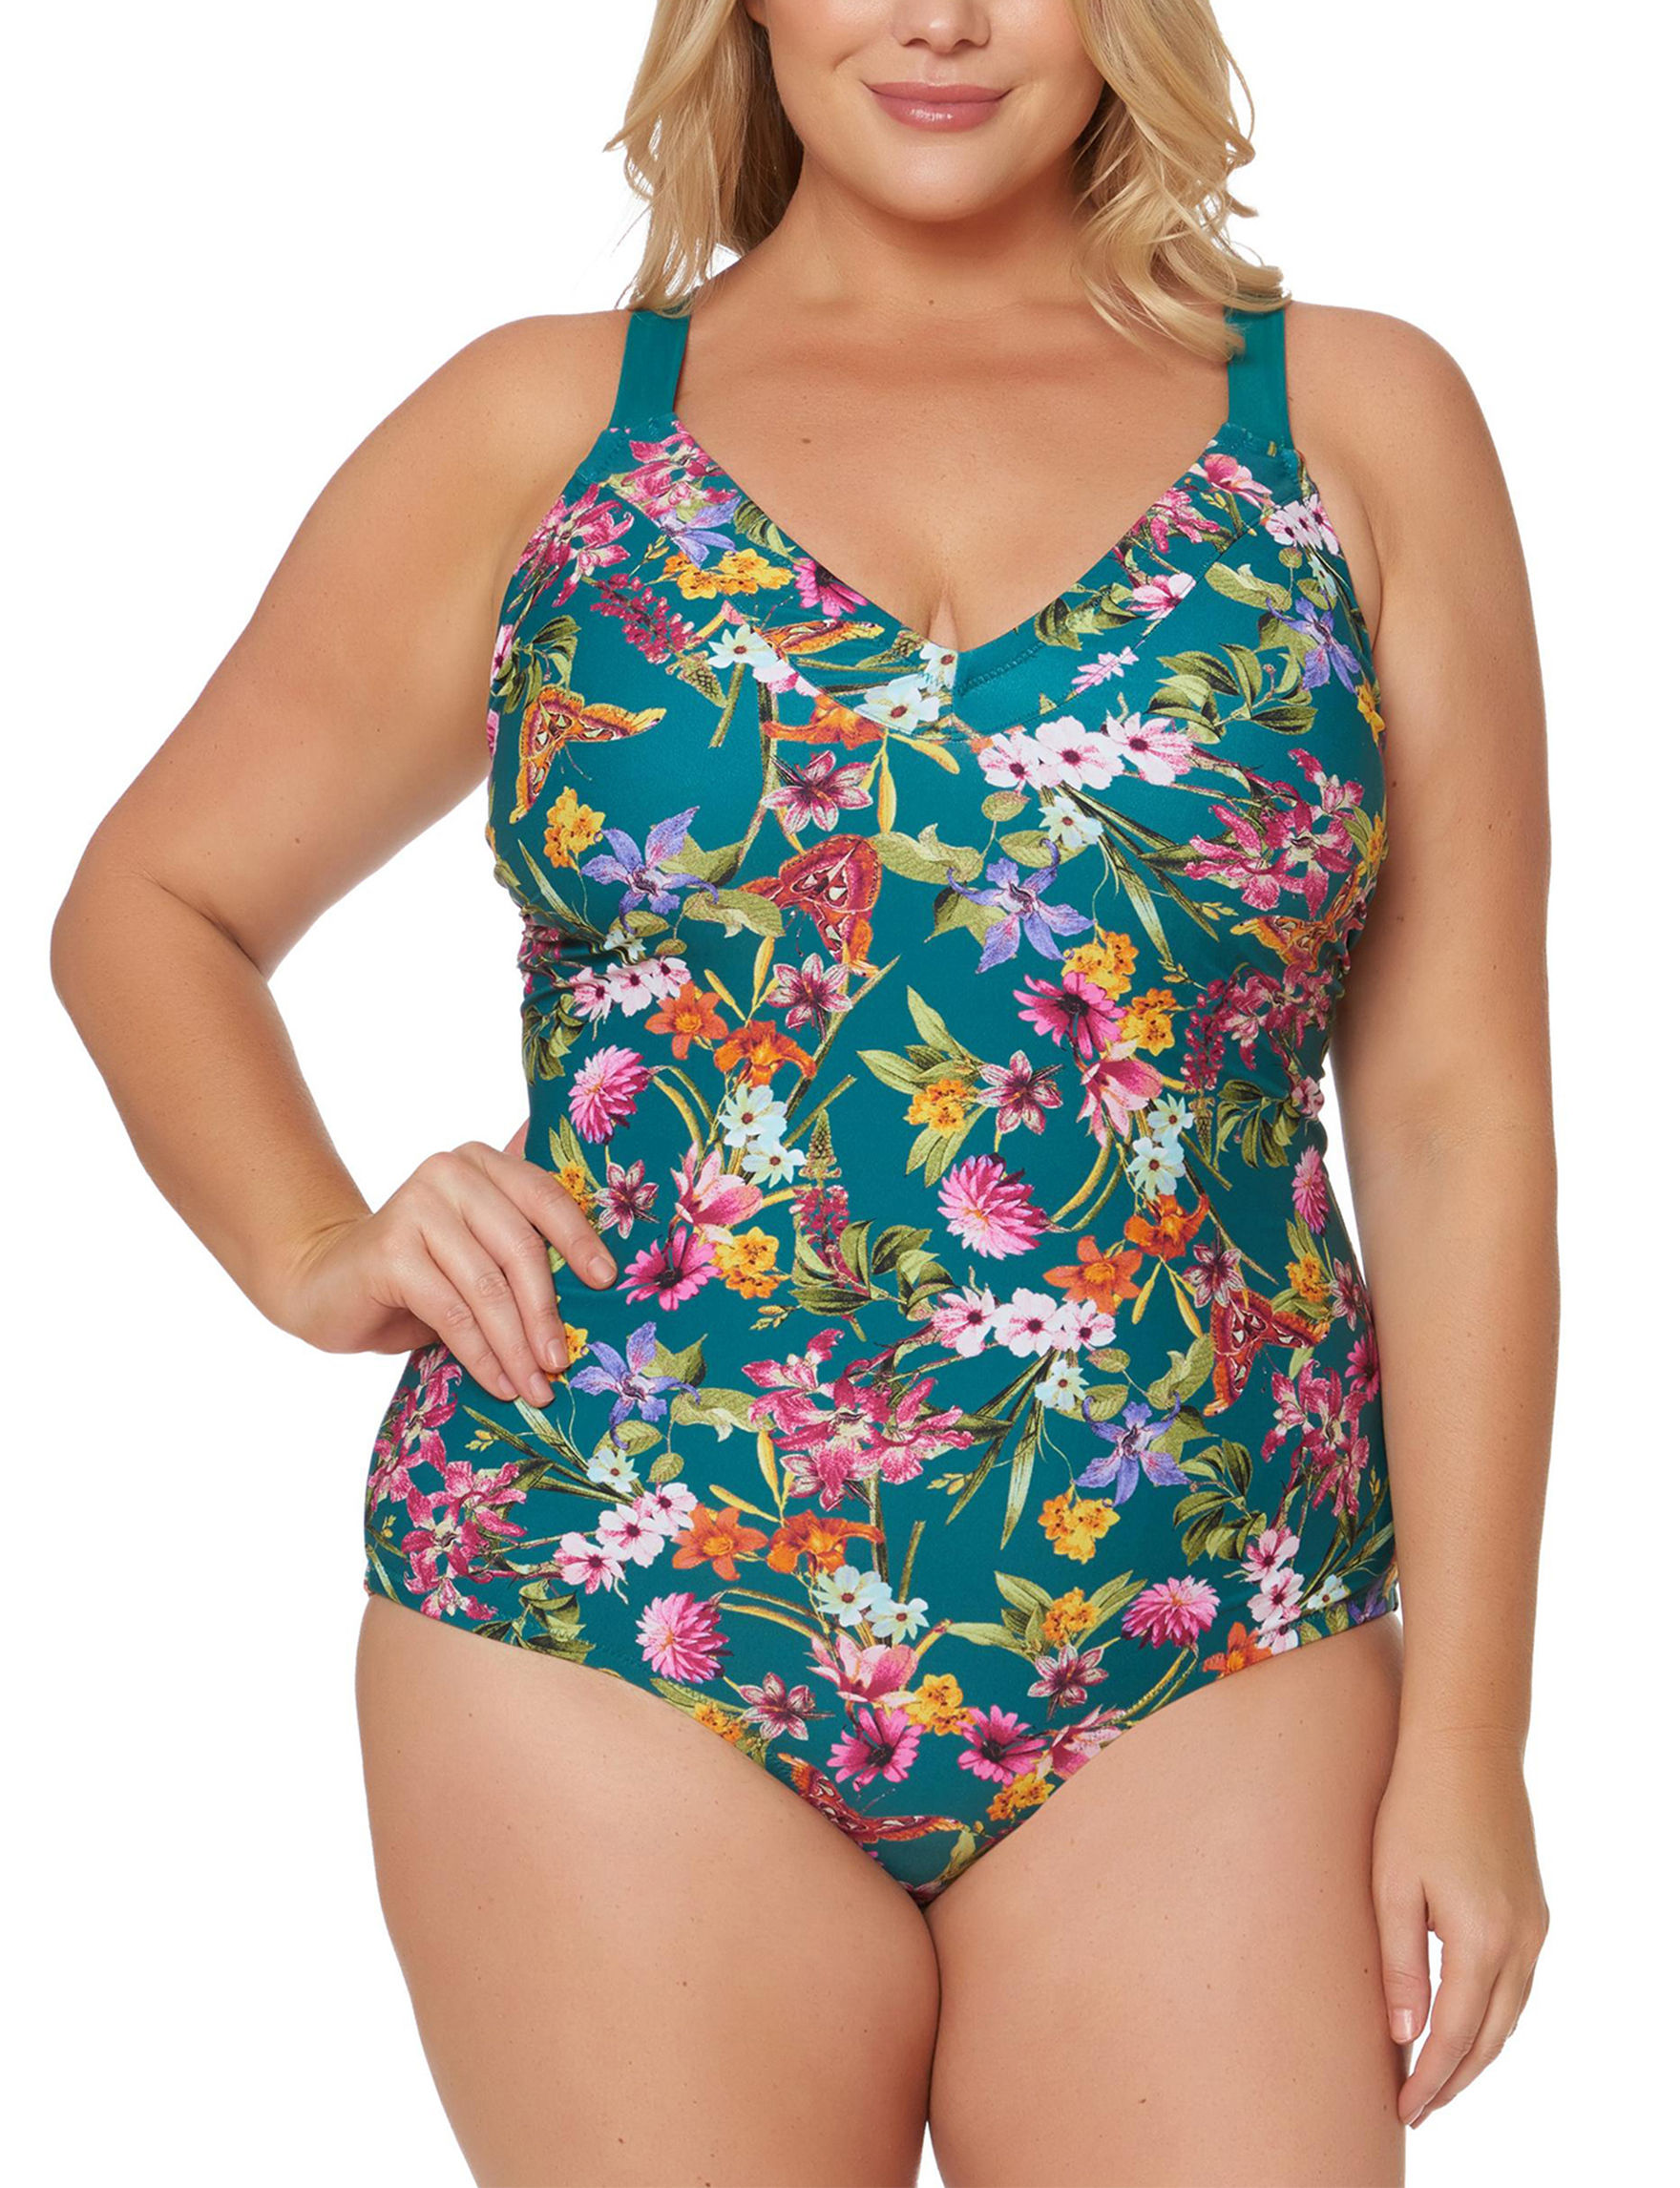 Jessica Simpson Teal Floral One-piece Swimsuits